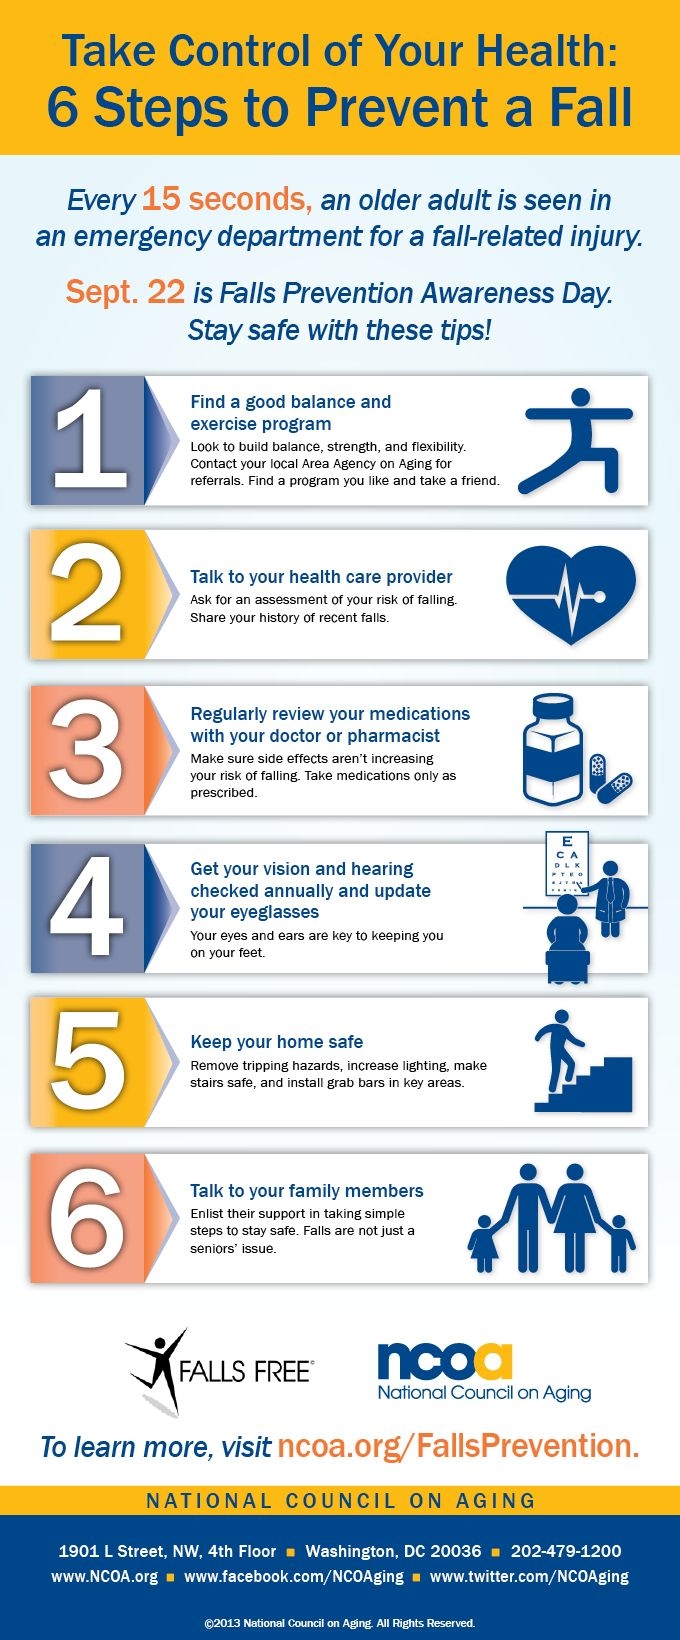 Take Control of Your Health 6 Steps to Prevent a Fall